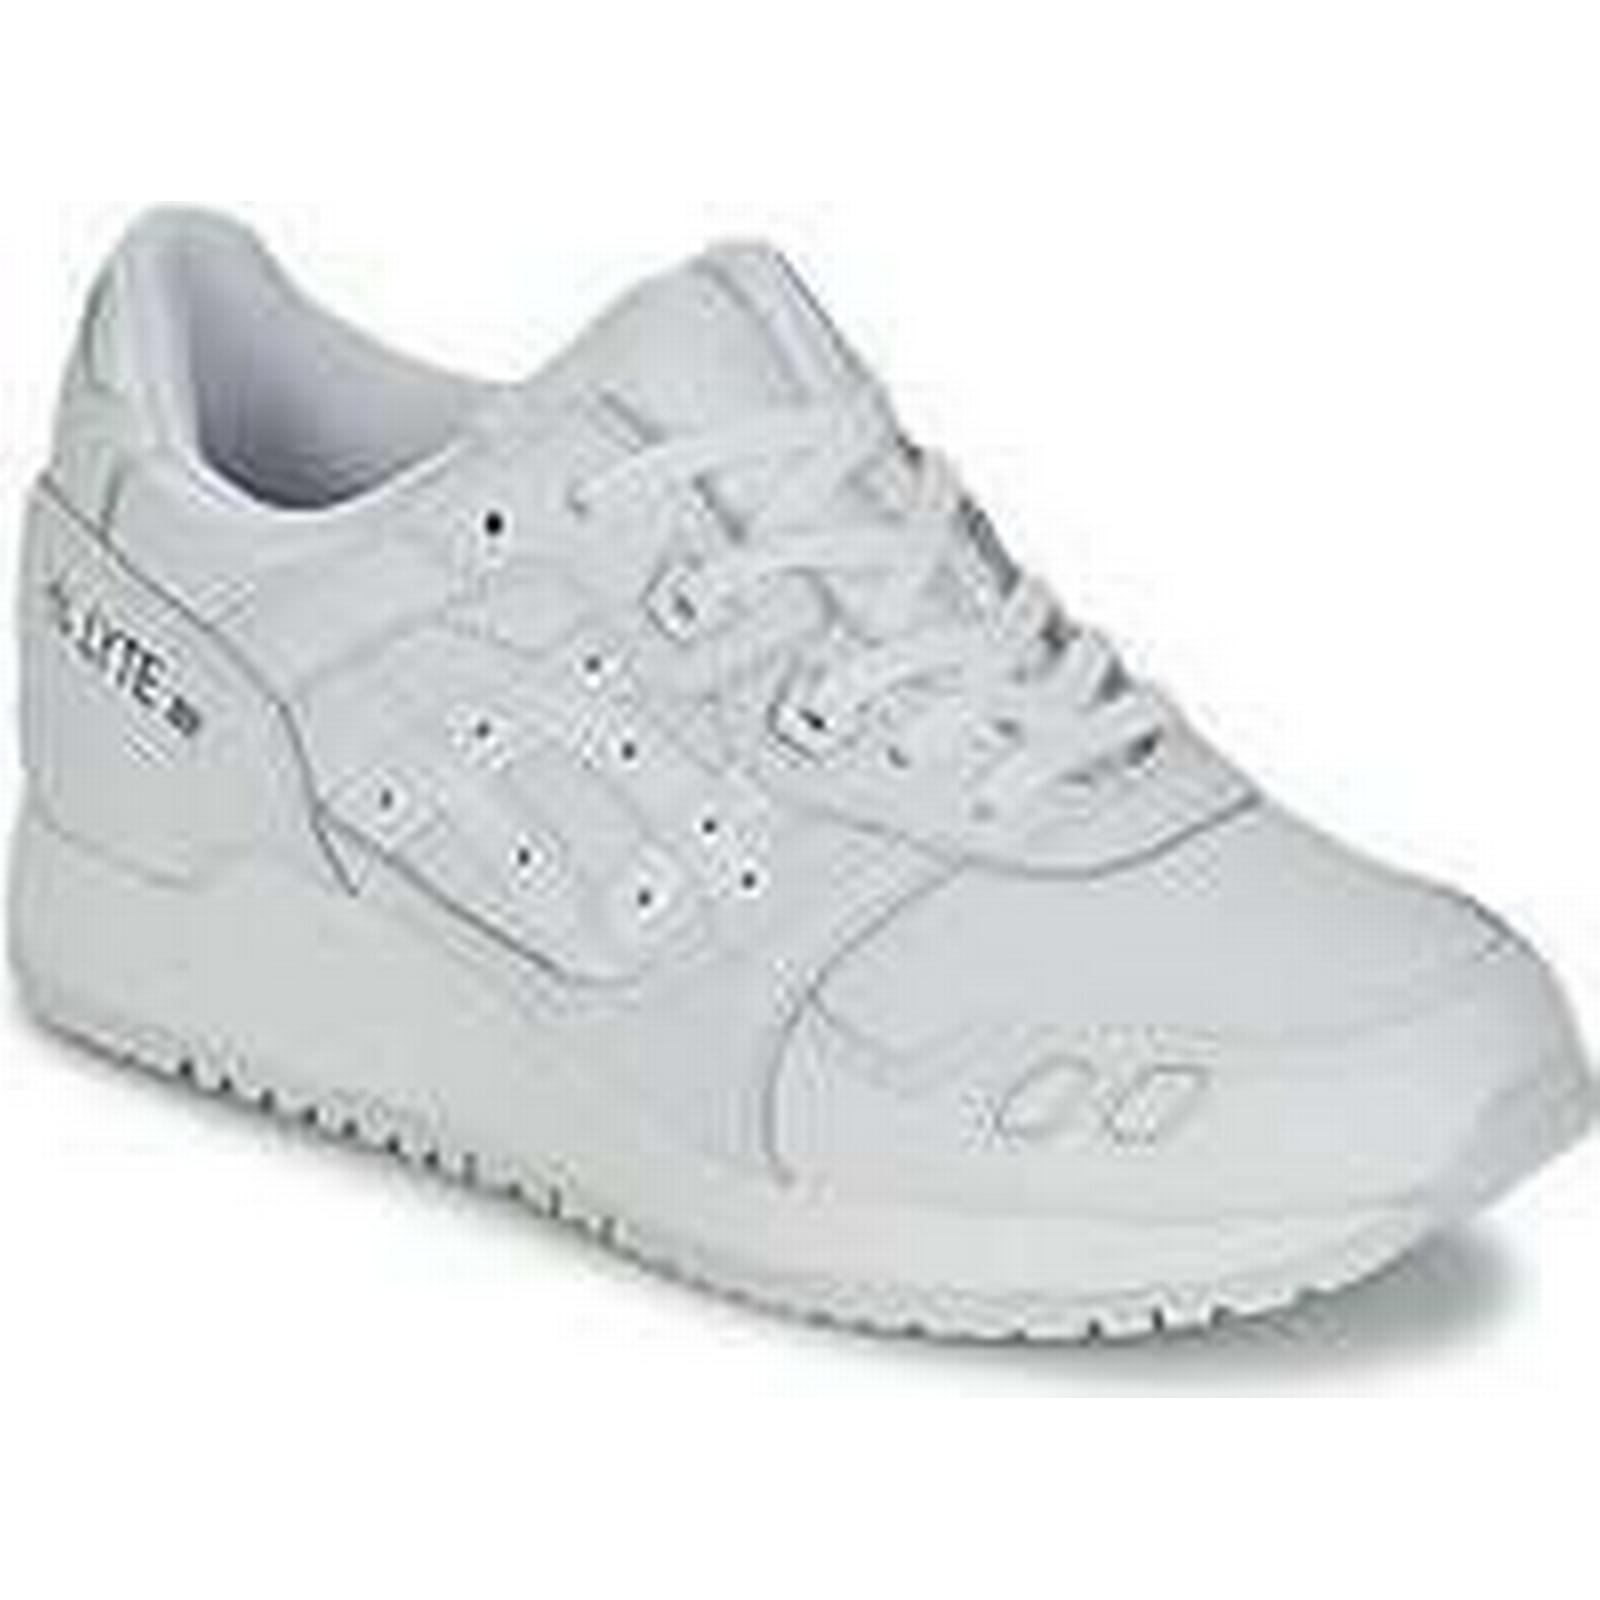 Spartoo.co.uk Asics (Trainers) GEL-LYTE III men's Shoes (Trainers) Asics in White fb4d87